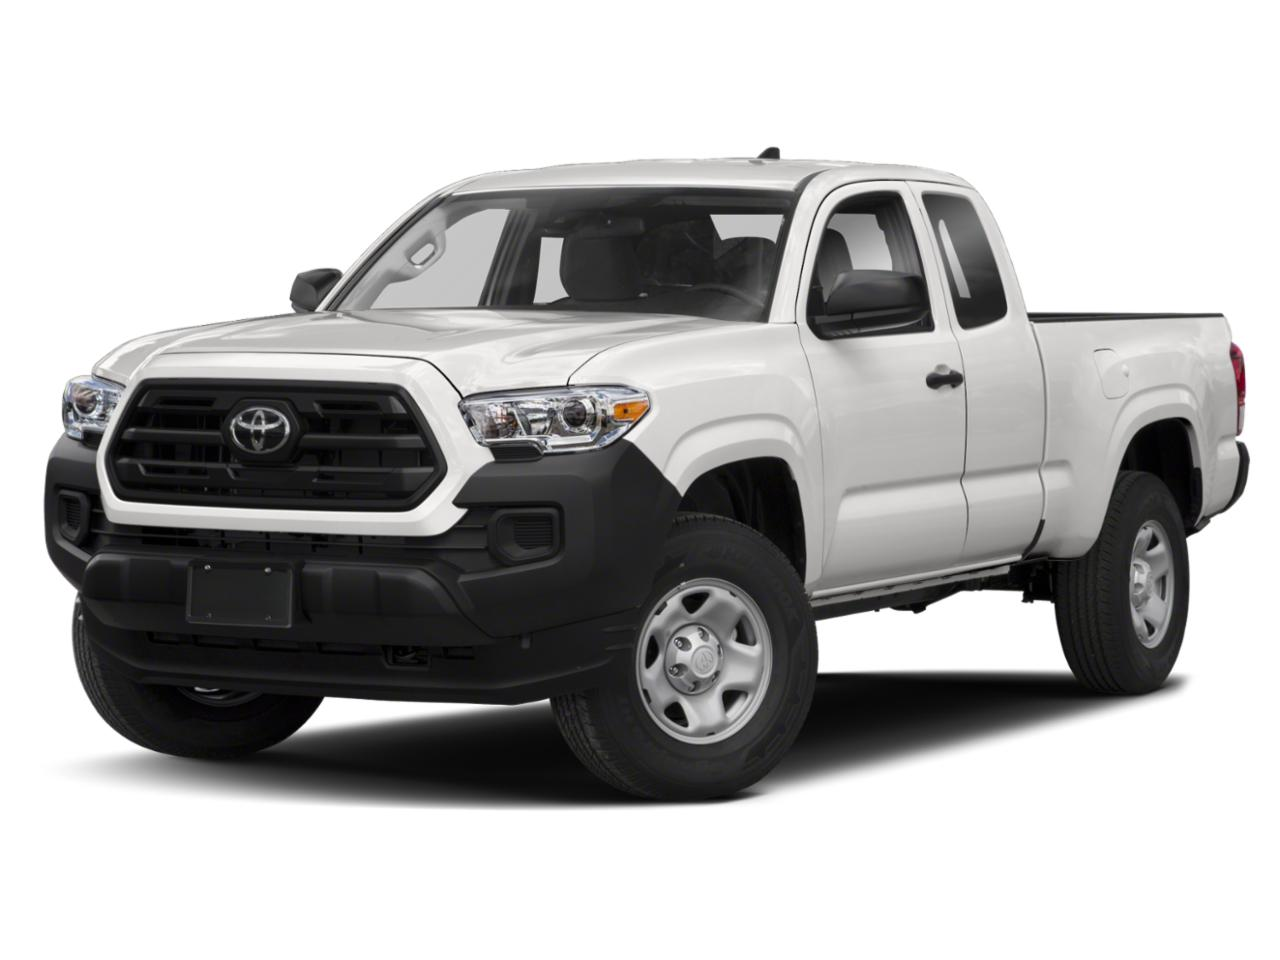 2019 Toyota Tacoma 2WD Vehicle Photo in Melbourne, FL 32901